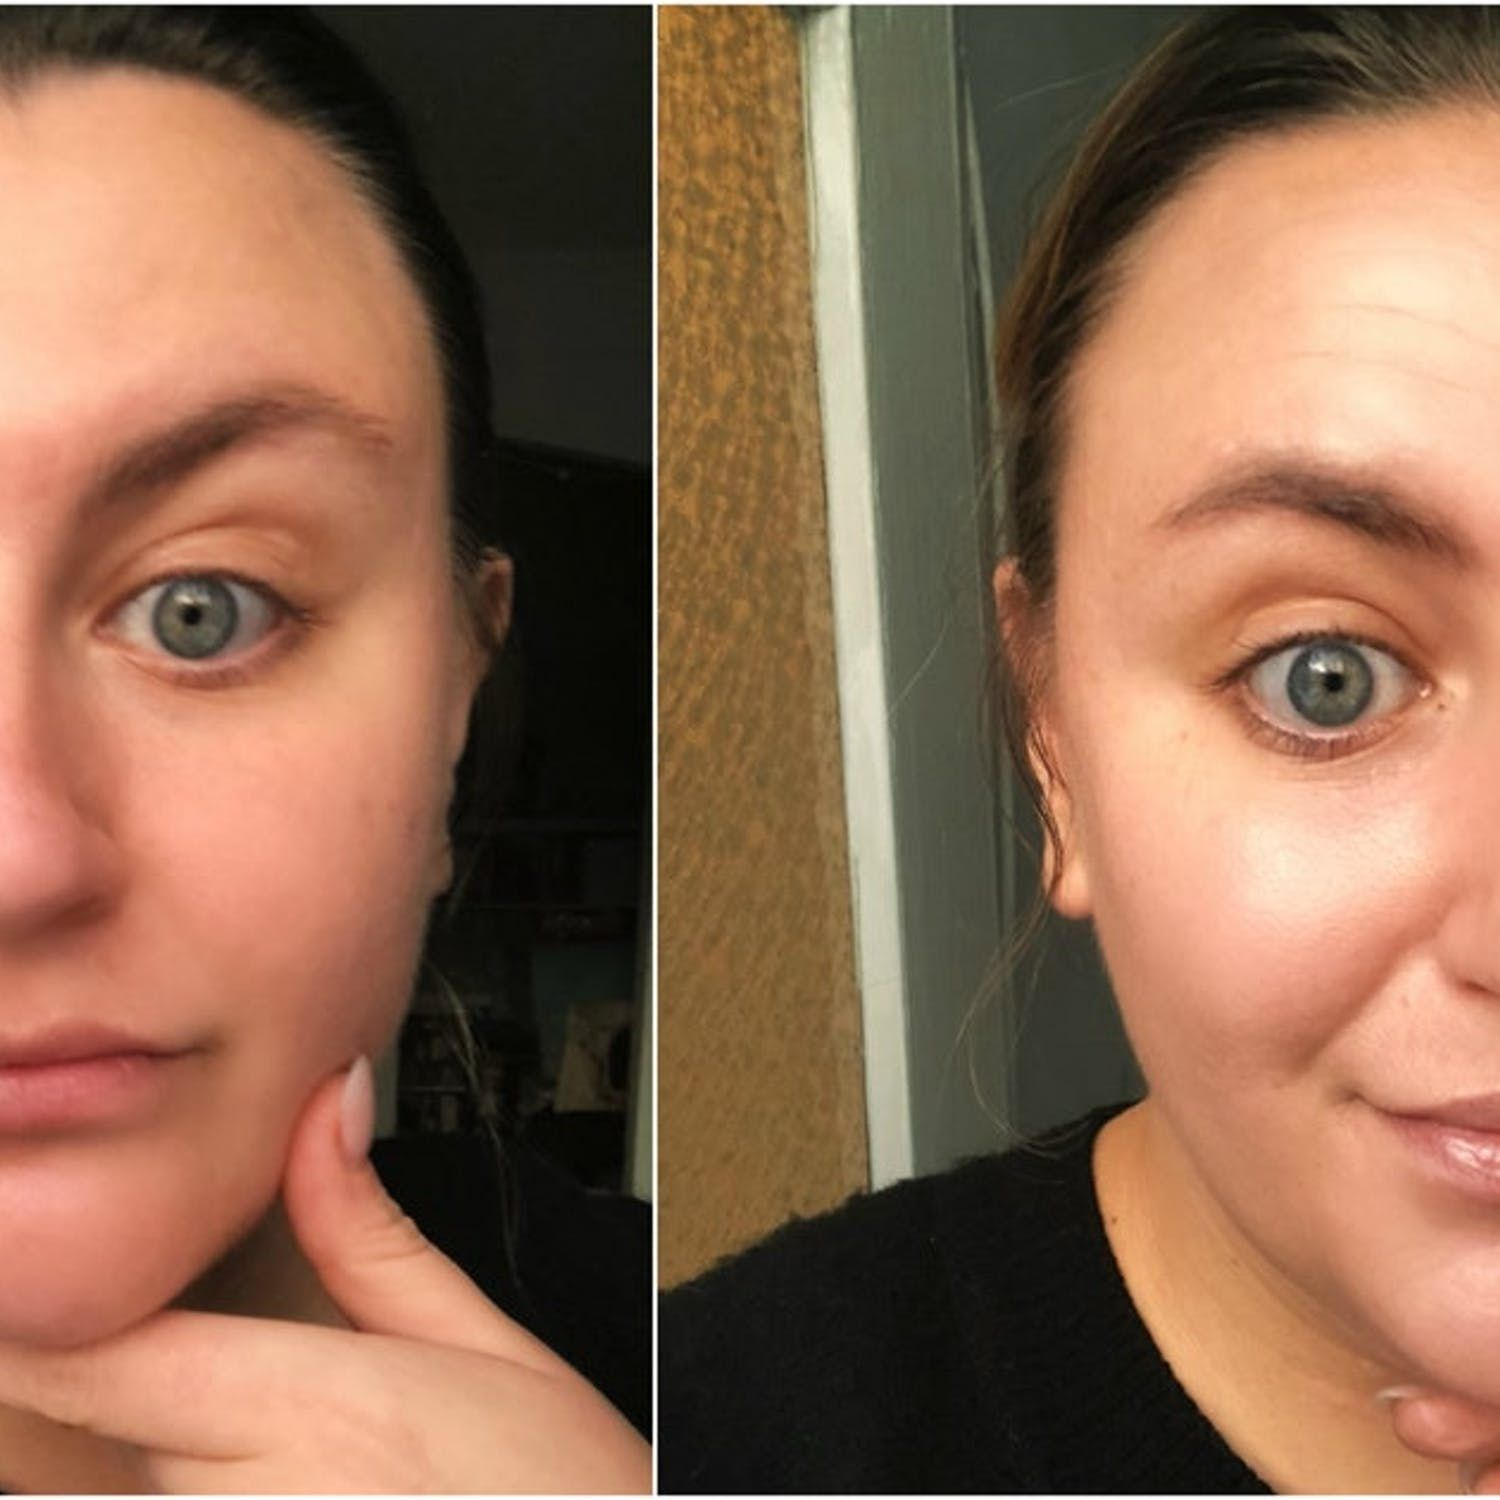 L Oreal S True Match Lumi Glotion Is The One Drugstore Product That Gives Me Everything I Need From A Highlighter Glowing Skin Routine Glowing Skin Makeup Cleanser For Oily Skin